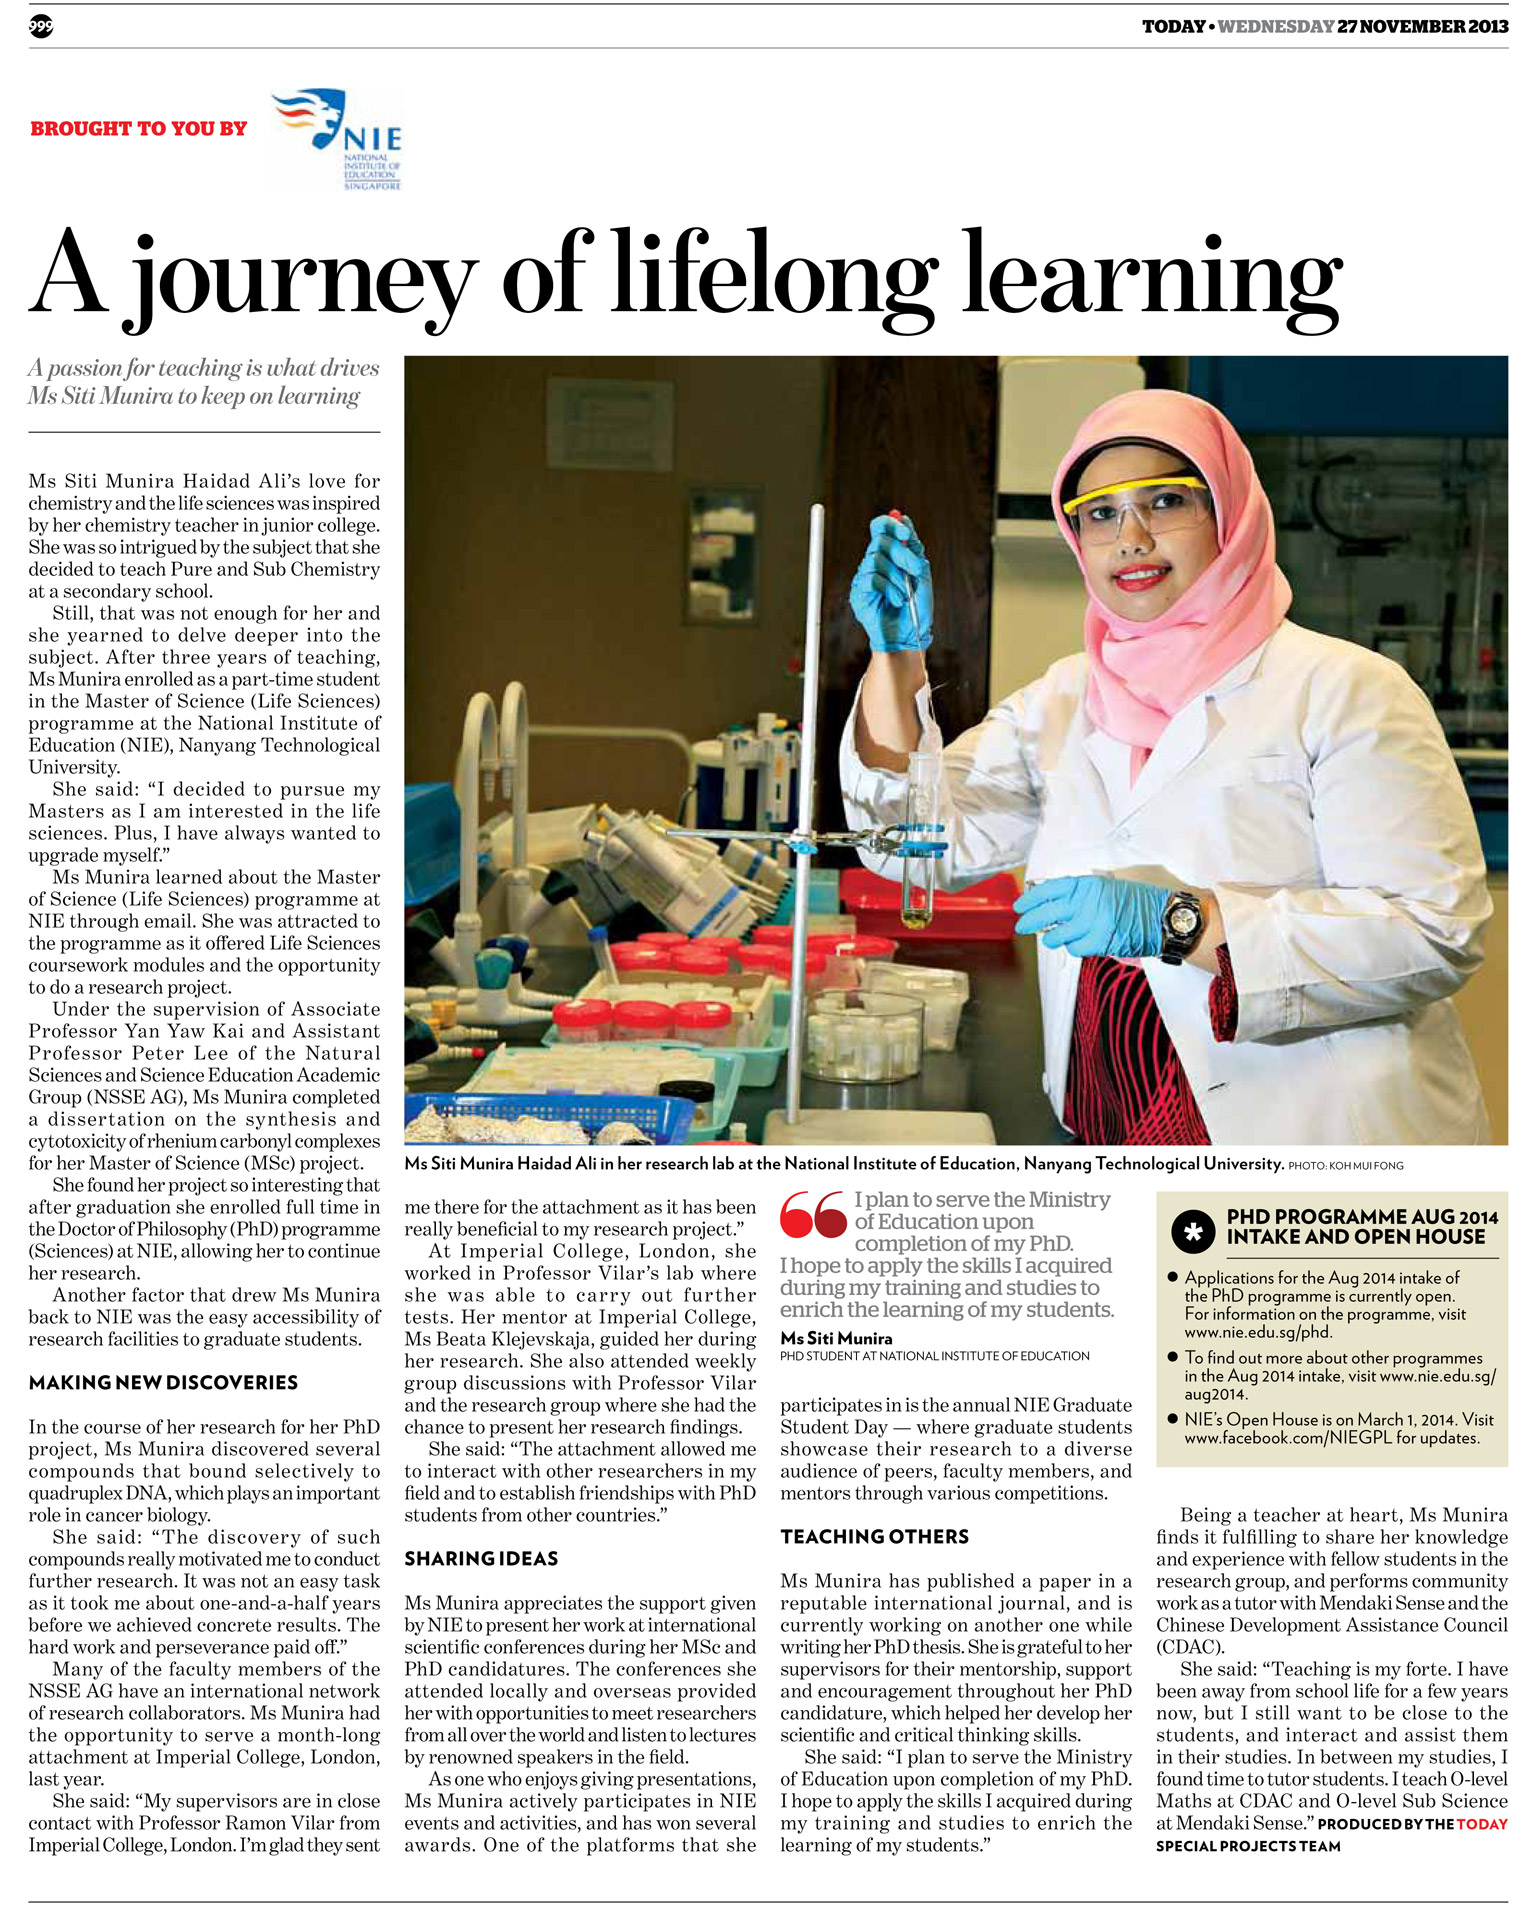 A Journey of Lifelong Learning